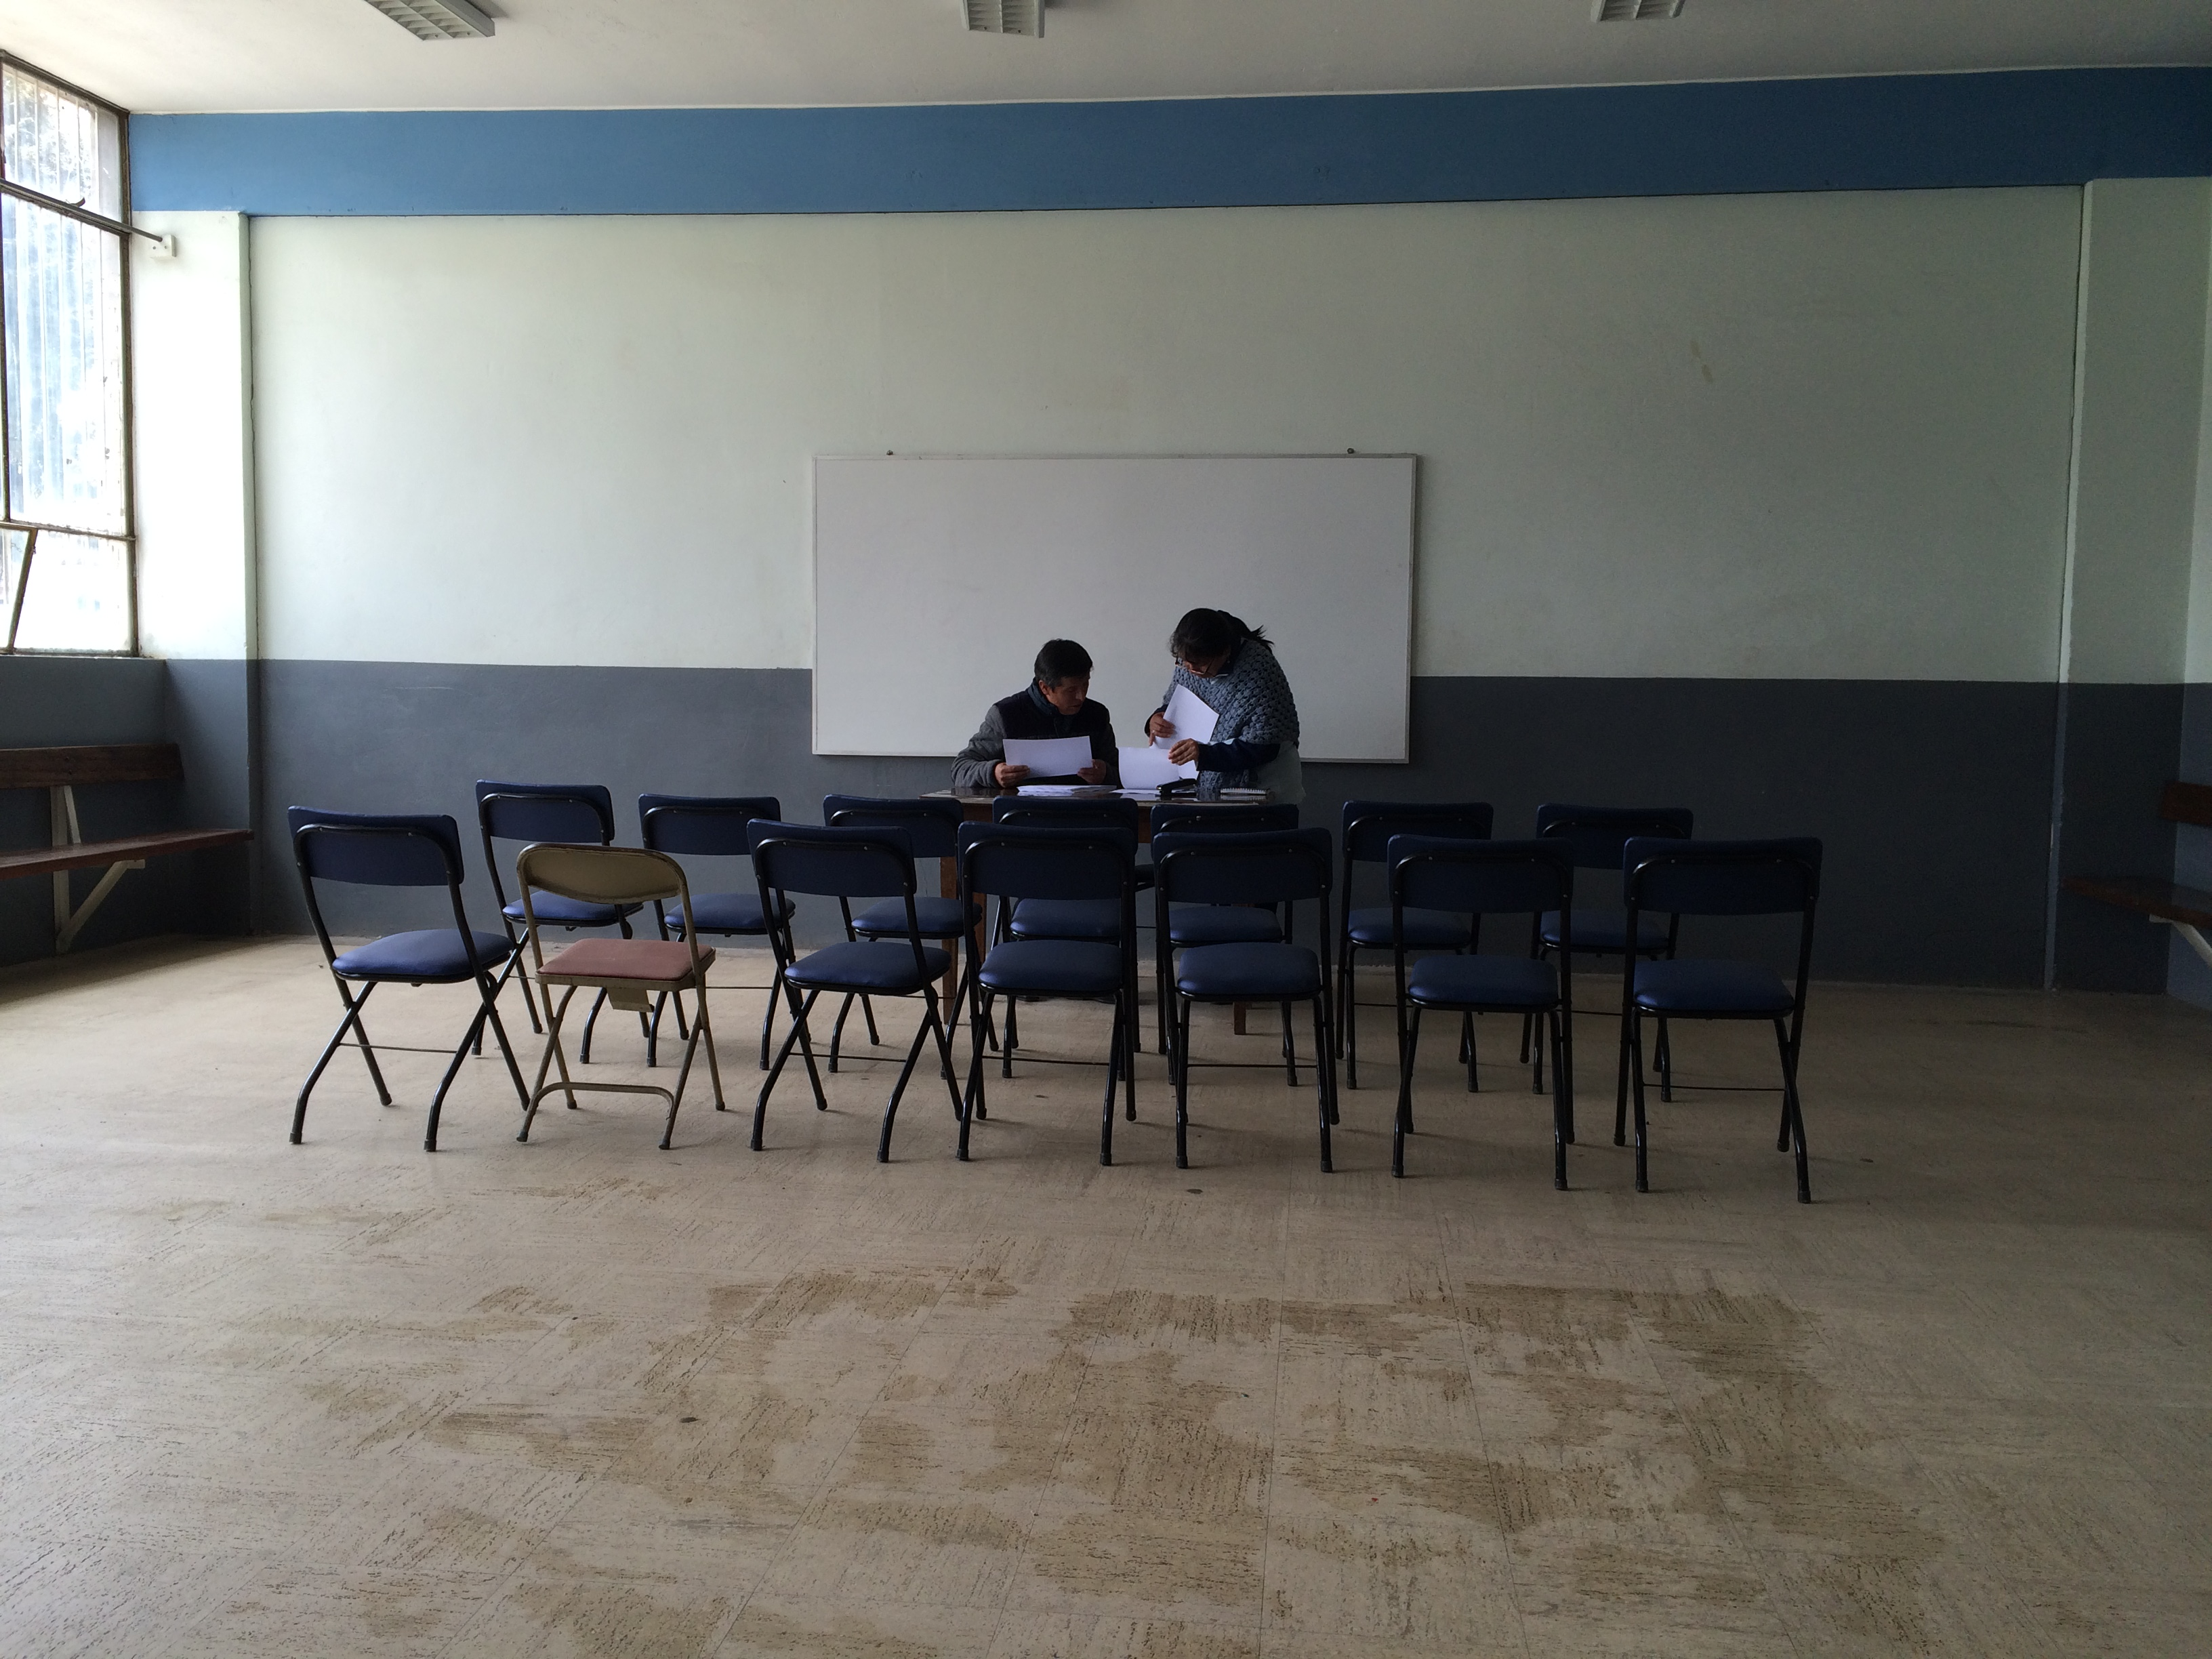 Our partners prepare the necessary legal paperwork as they wait at the local parish in La Oroya to execute the health study.